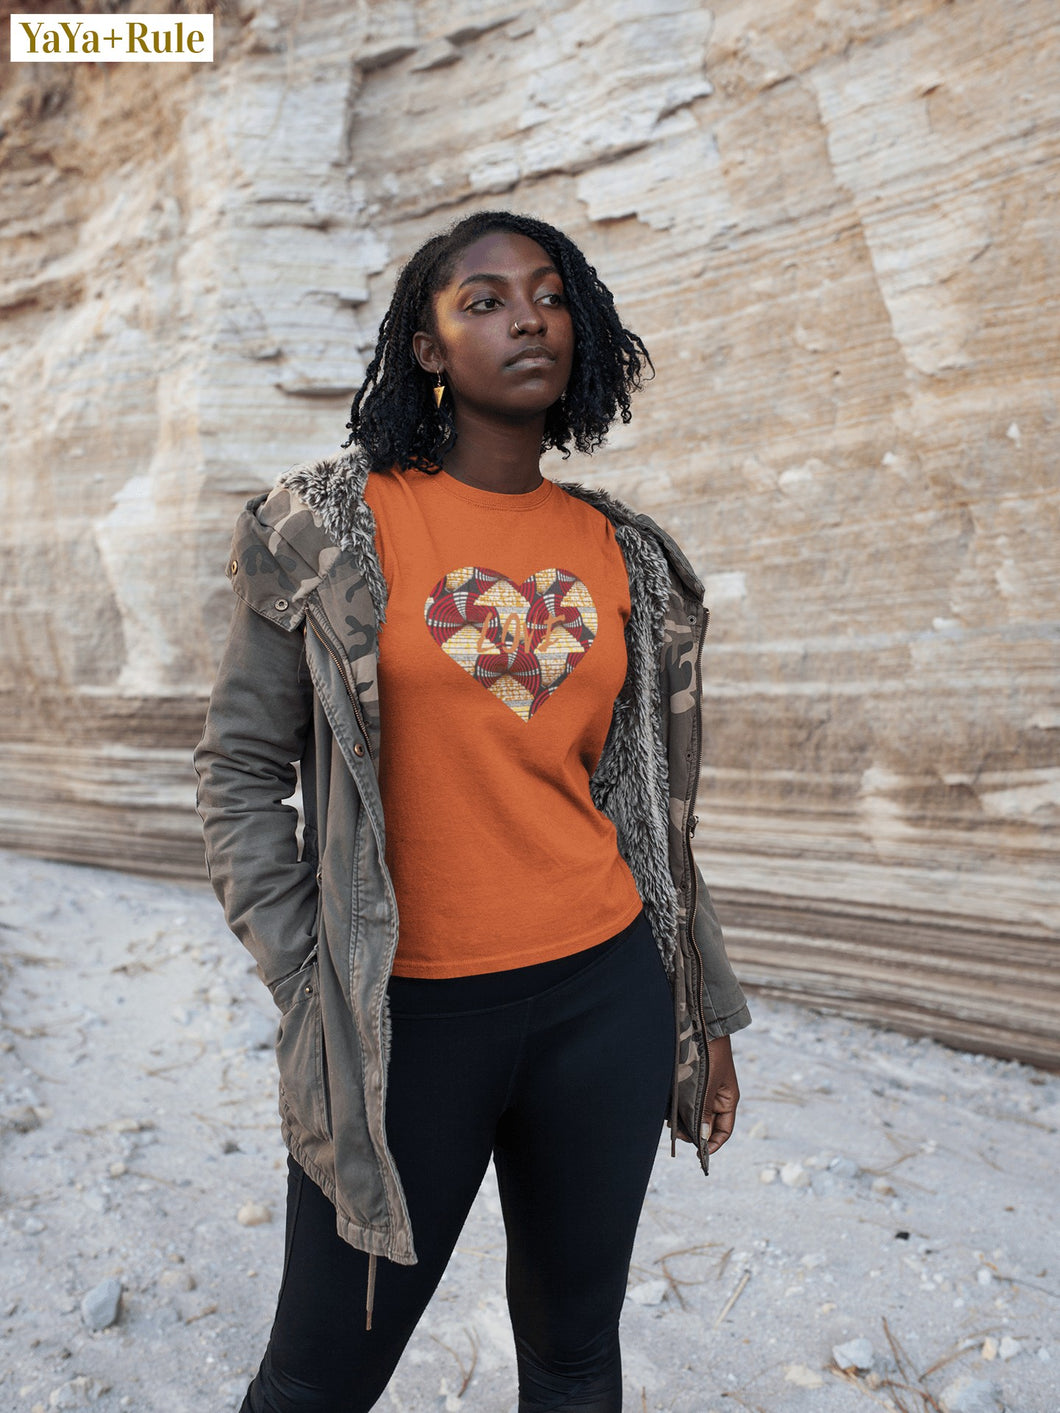 Heart African Color Print Short-Sleeve Unisex T-Shirt YaYa+Rule